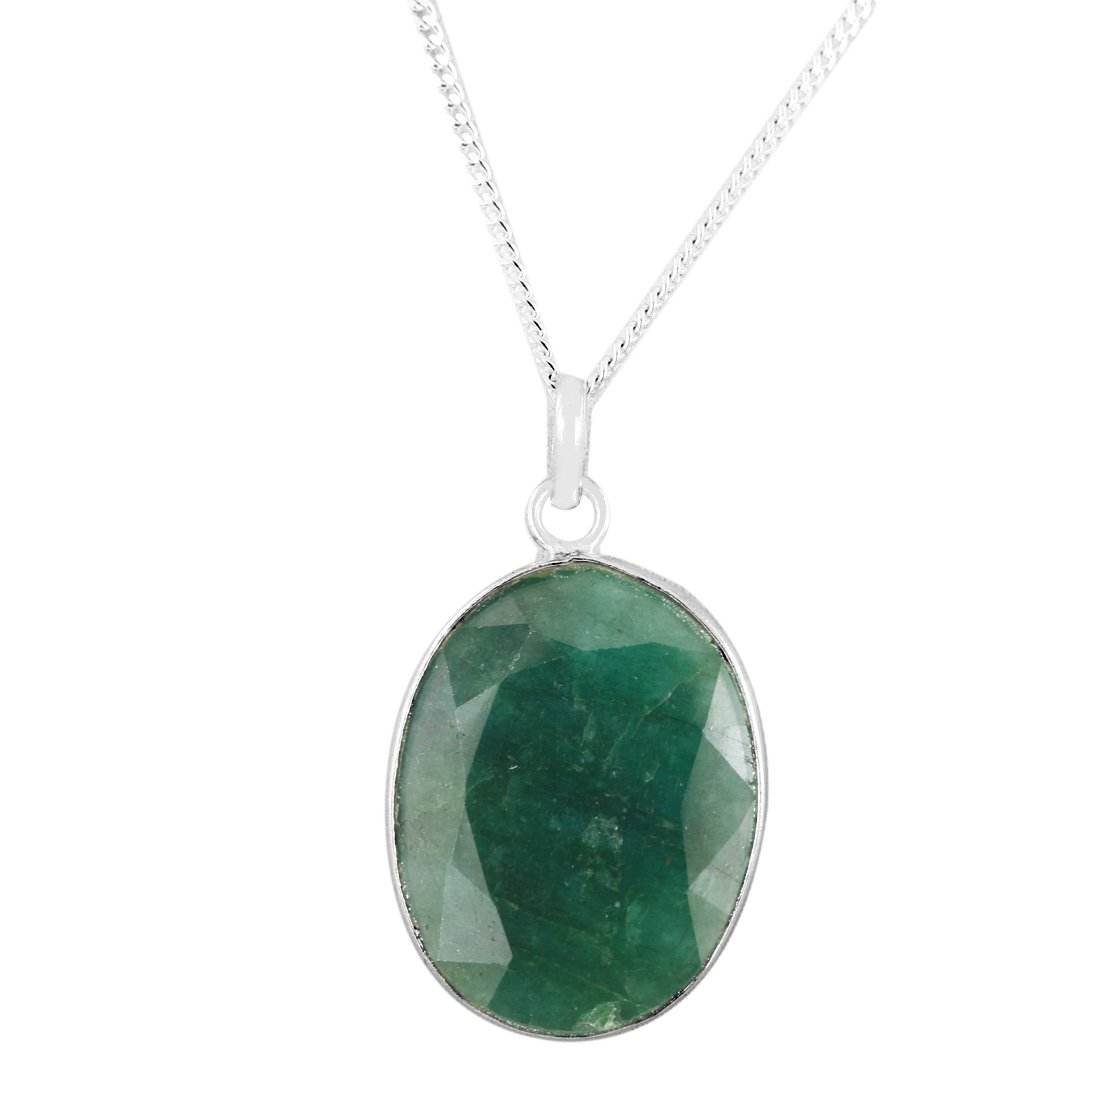 skyjewels 40.50 Cts Natural Emerald Gemstone Pendant with Free Chain